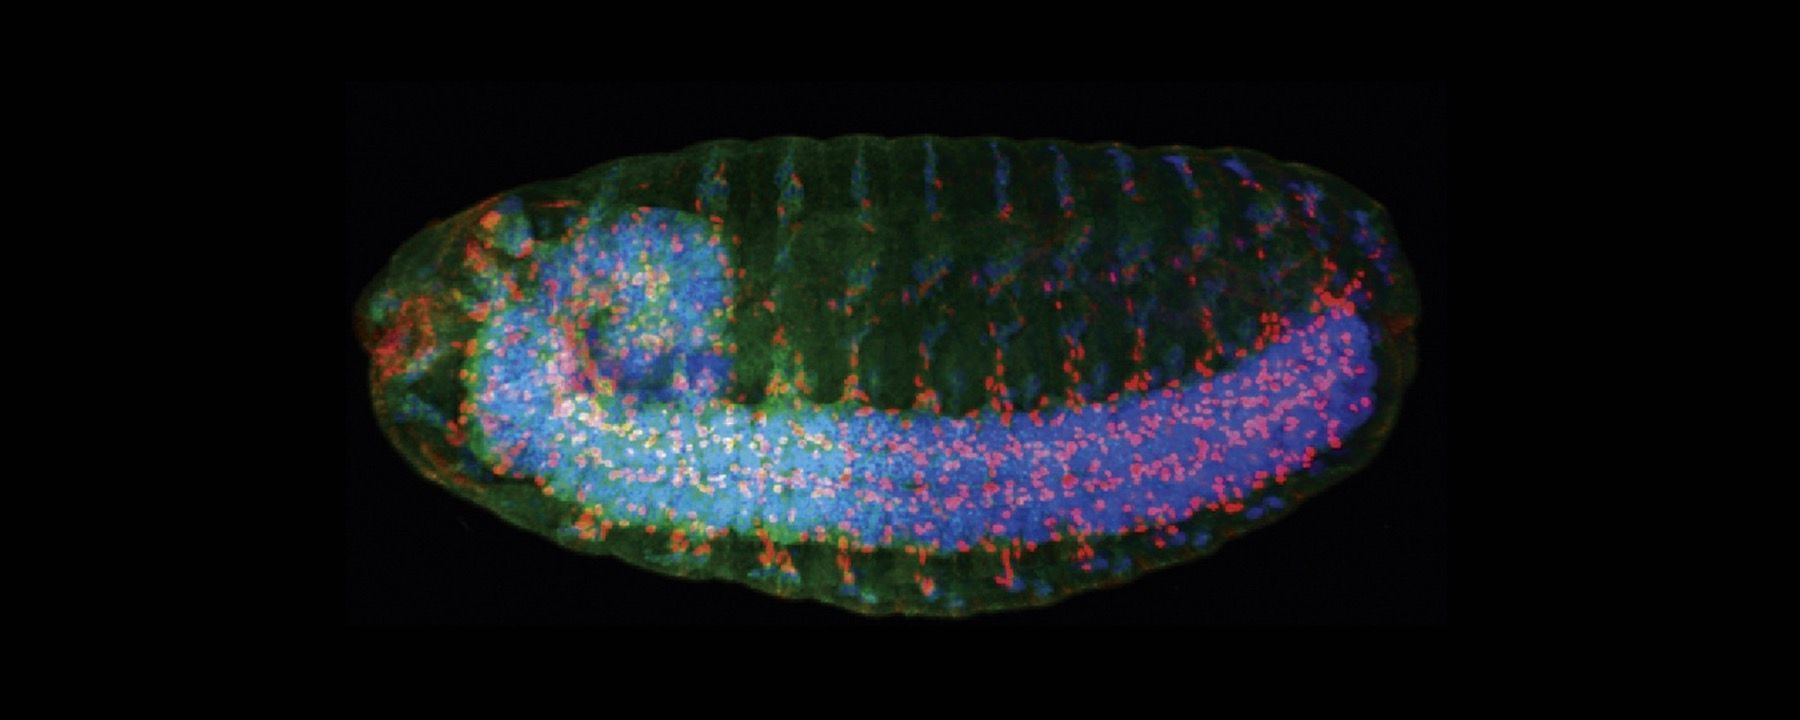 Image of the Day: Neural Branching Gene